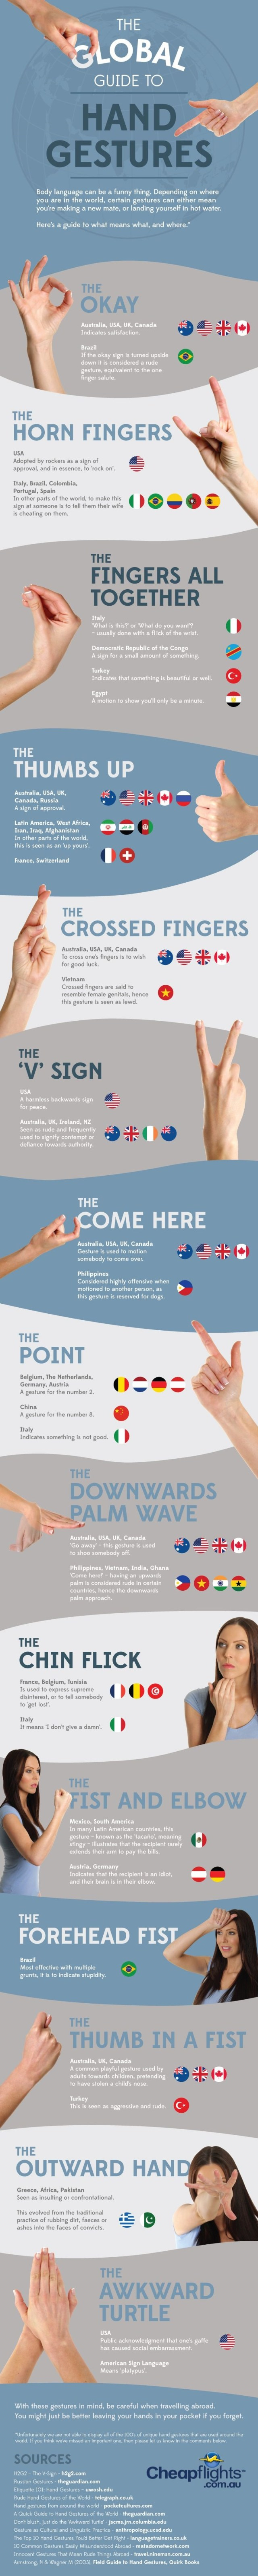 infographic-the-global-guide-to-hand-gestures_53287cf4db5ea